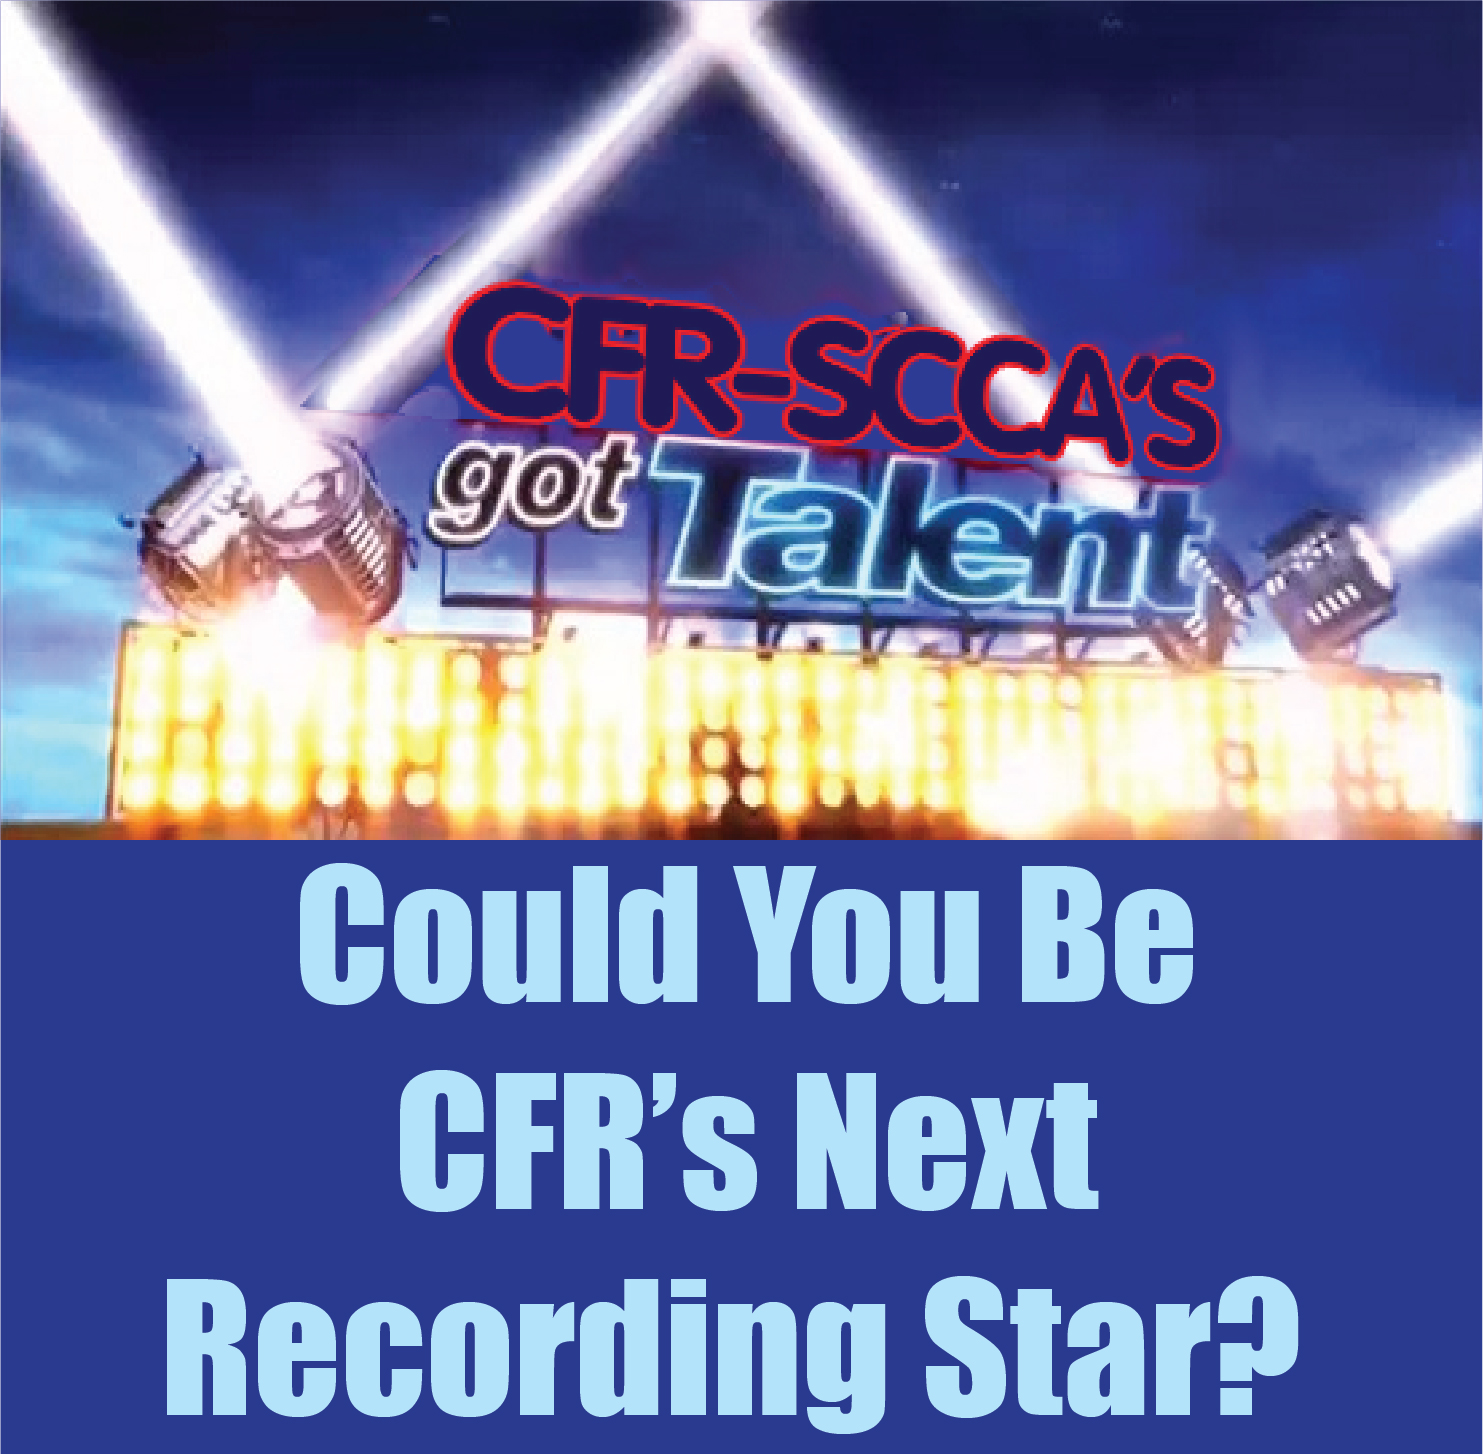 CFR is looking for someone to record the minutes of the BoG Meetings